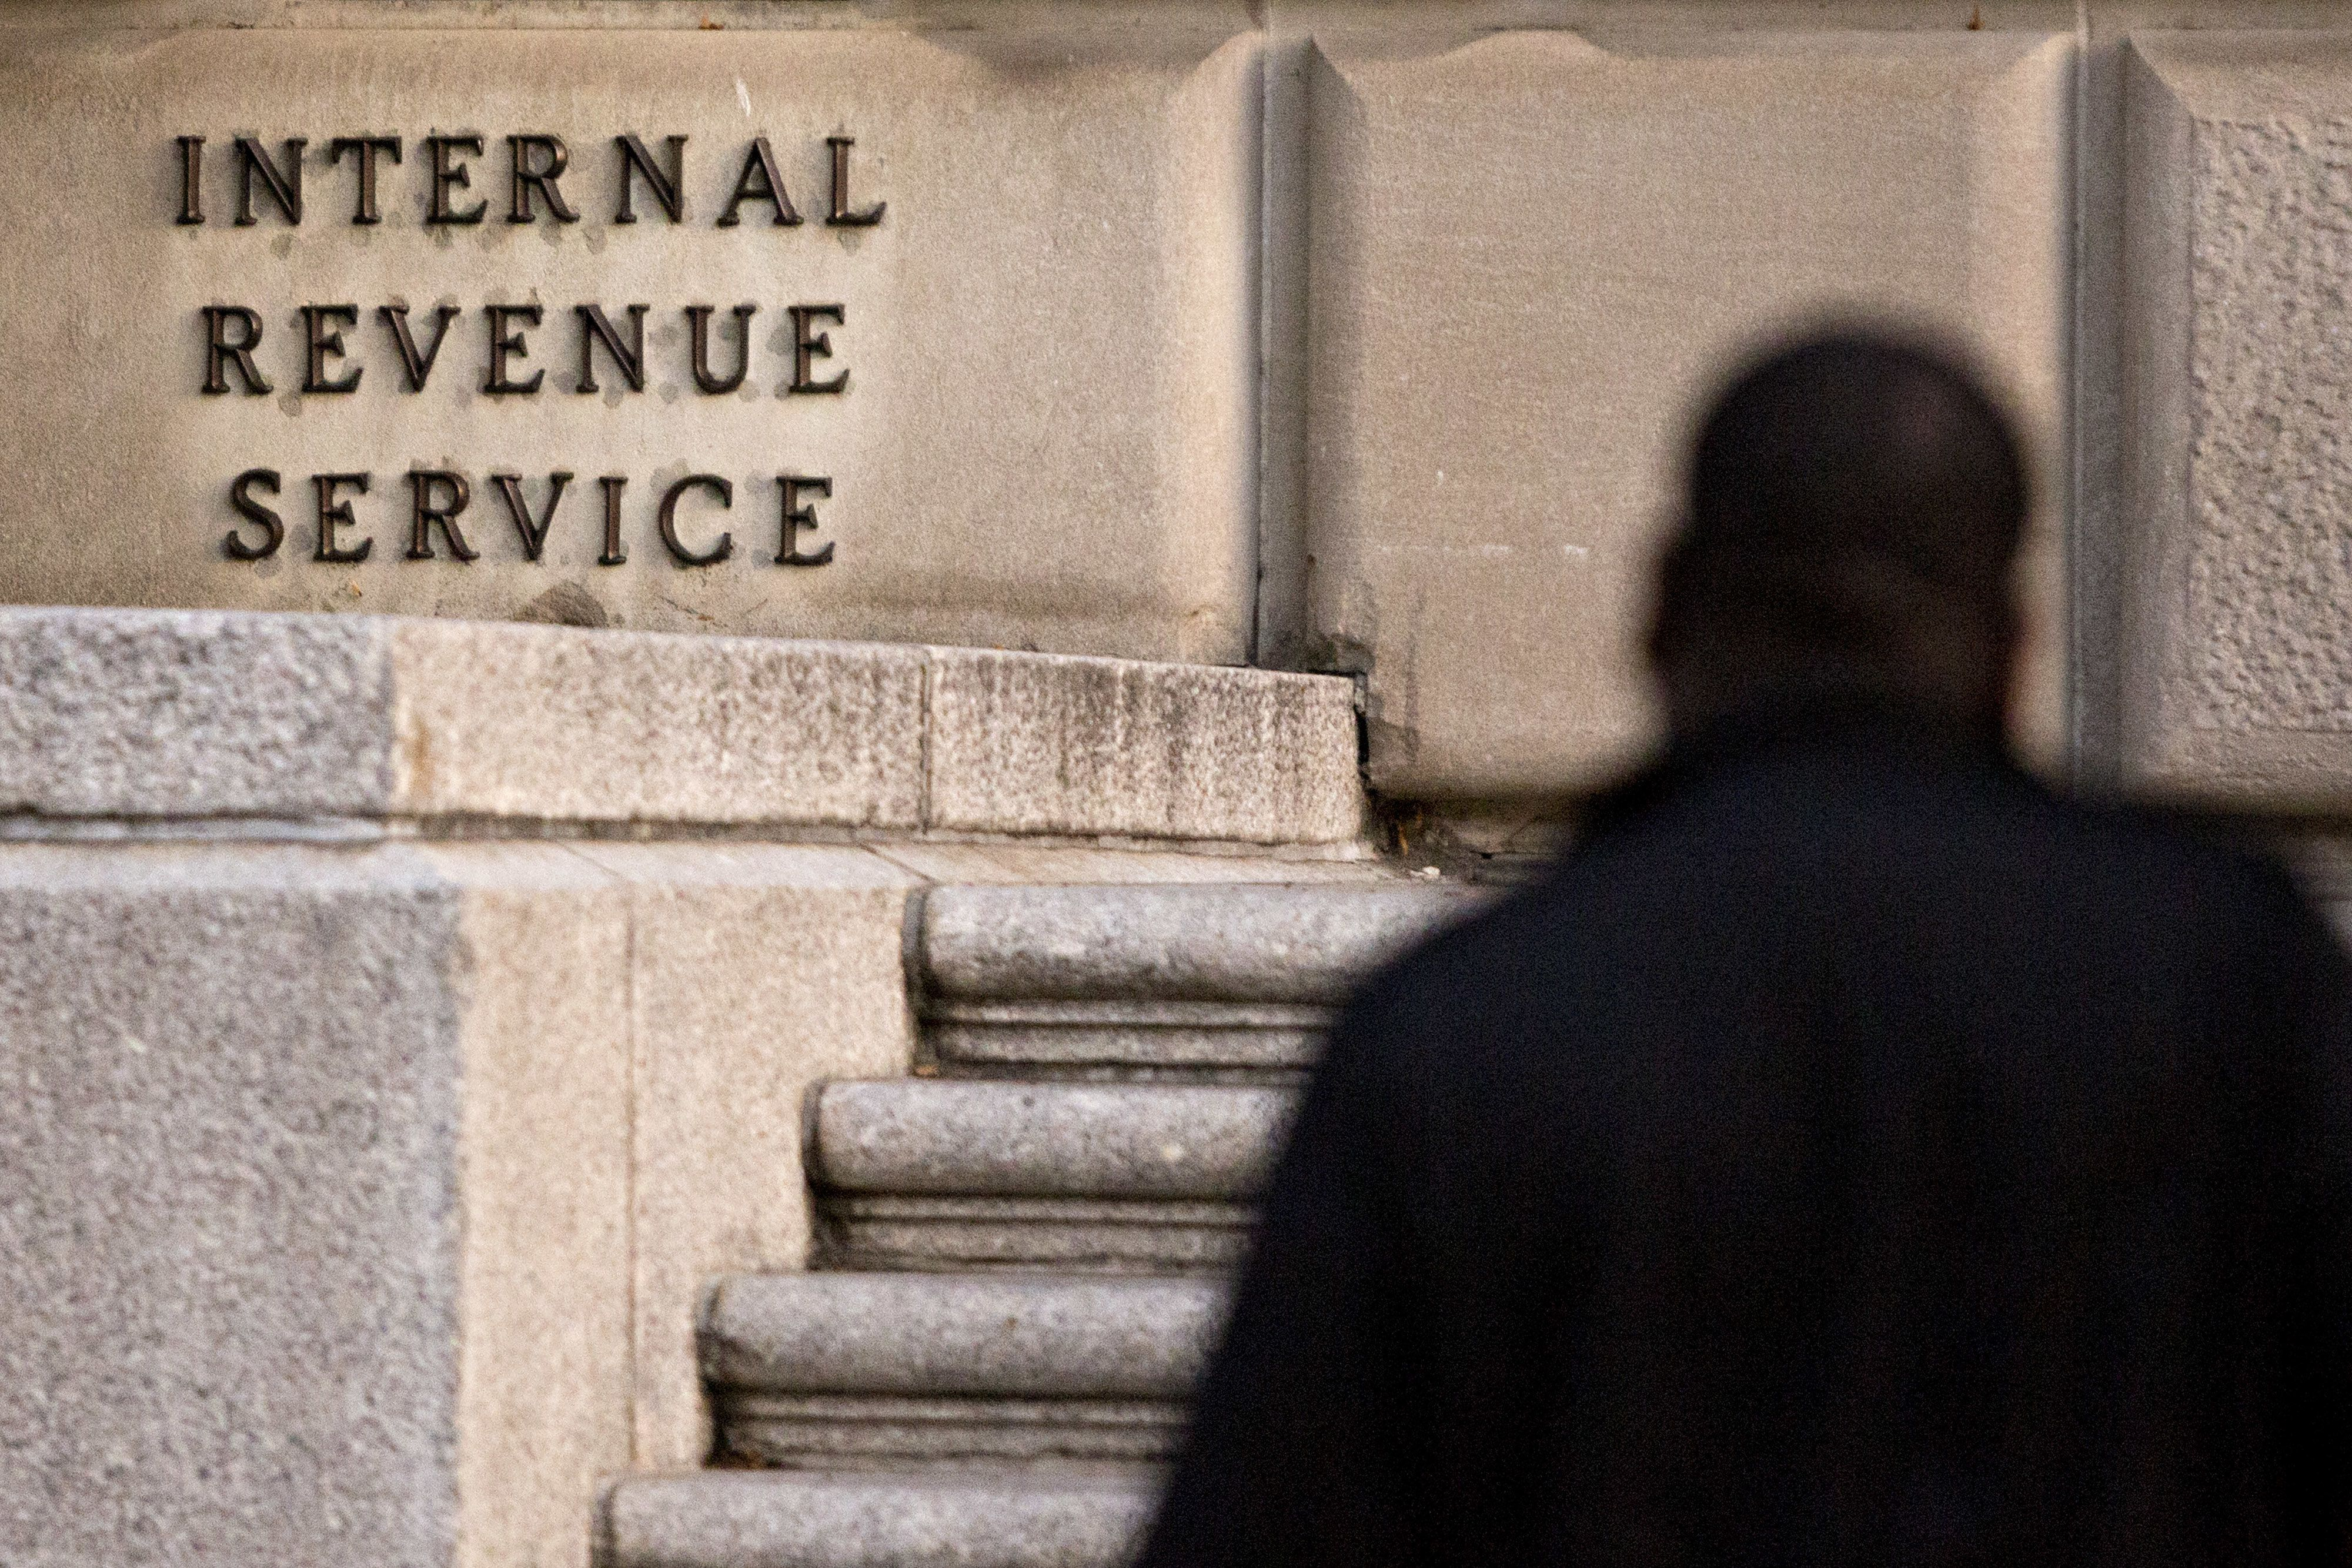 A man walks past the Internal Revenue Service (IRS) headquarters in Washington, D.C., U.S., on Friday, Oct. 20, 2017. President Donald Trump's top legislative priority took a major step forward as the Senate narrowly approved a budget vehicle for tax cuts -- but sharp divides over an array of non-binding amendments revealed the towering challenge he faces from here. Photographer: Andrew Harrer/Bloomberg via Getty Images